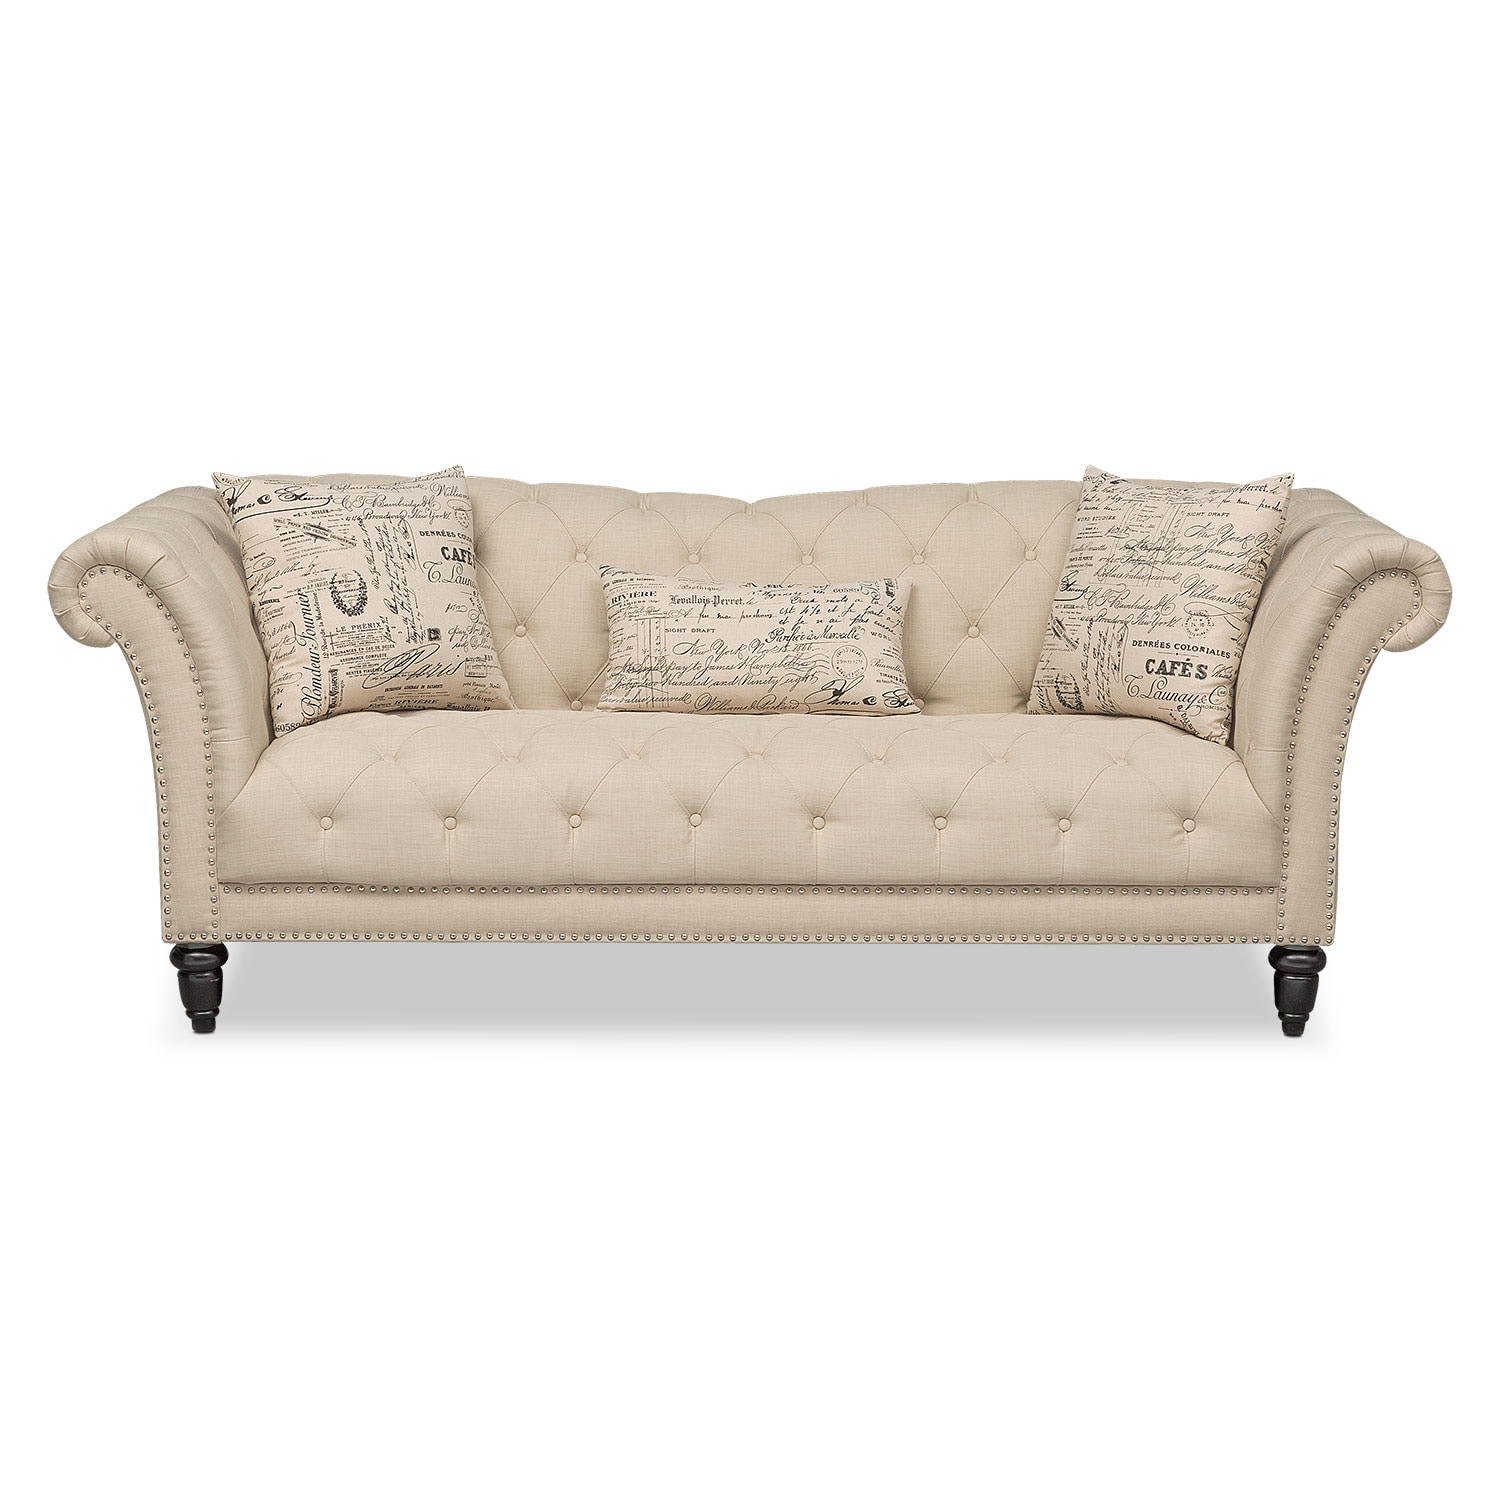 Marisol Sofa Beige Value City Furniture And Mattresses